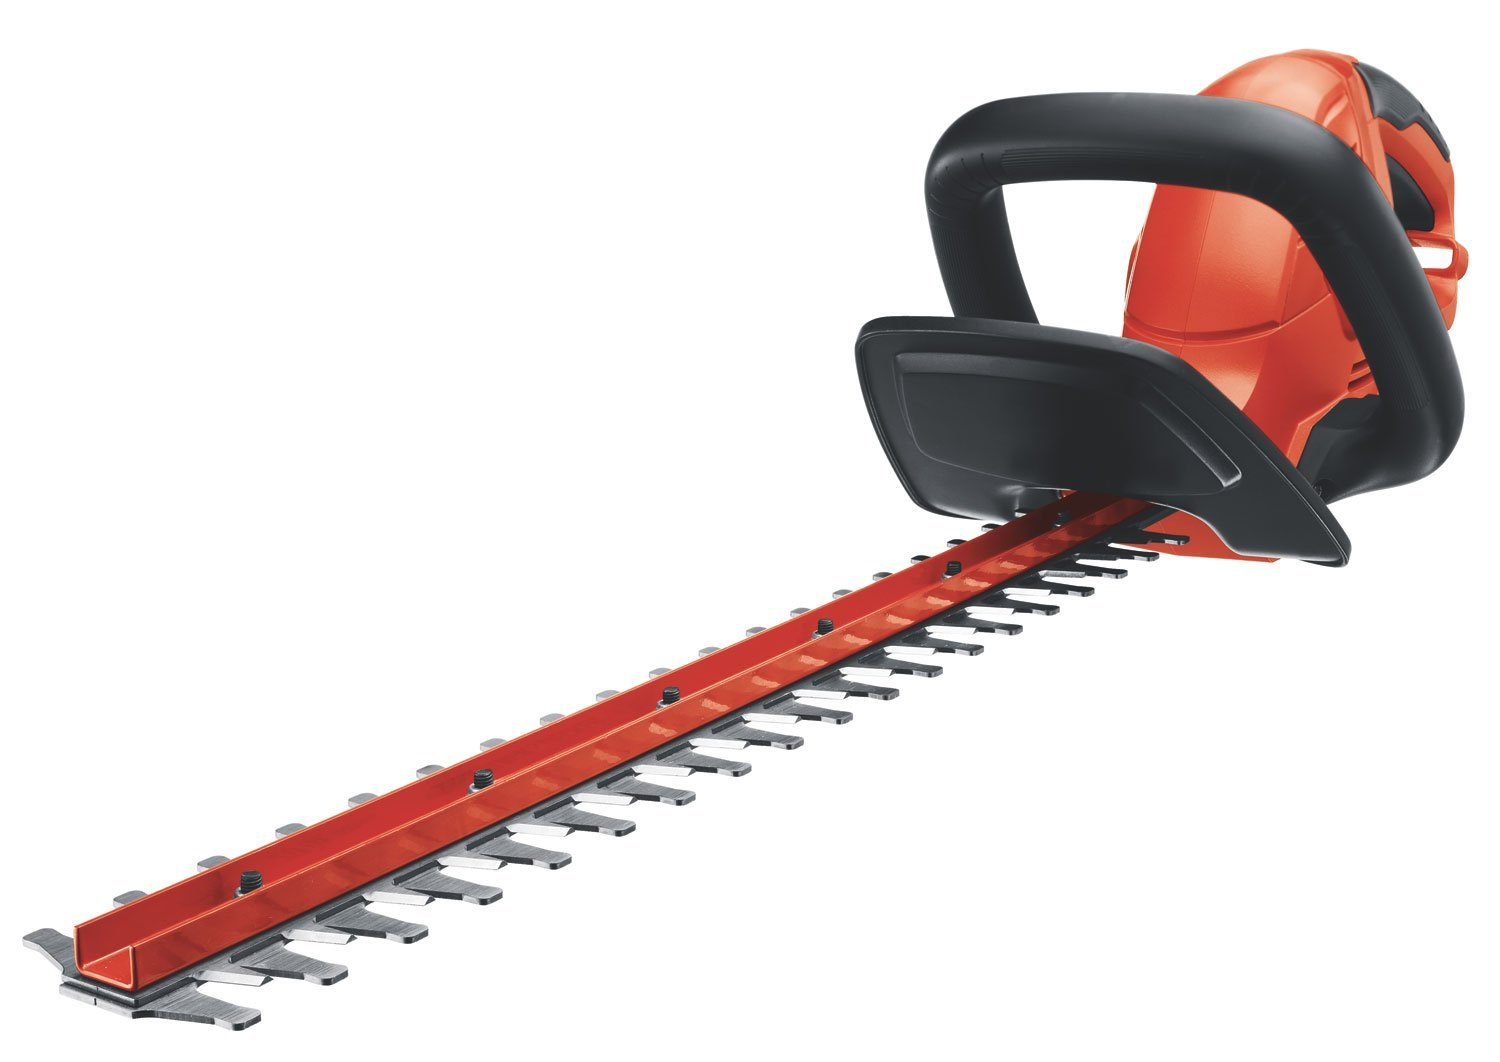 cordless hedge trimmer best for garden decor. Black Bedroom Furniture Sets. Home Design Ideas